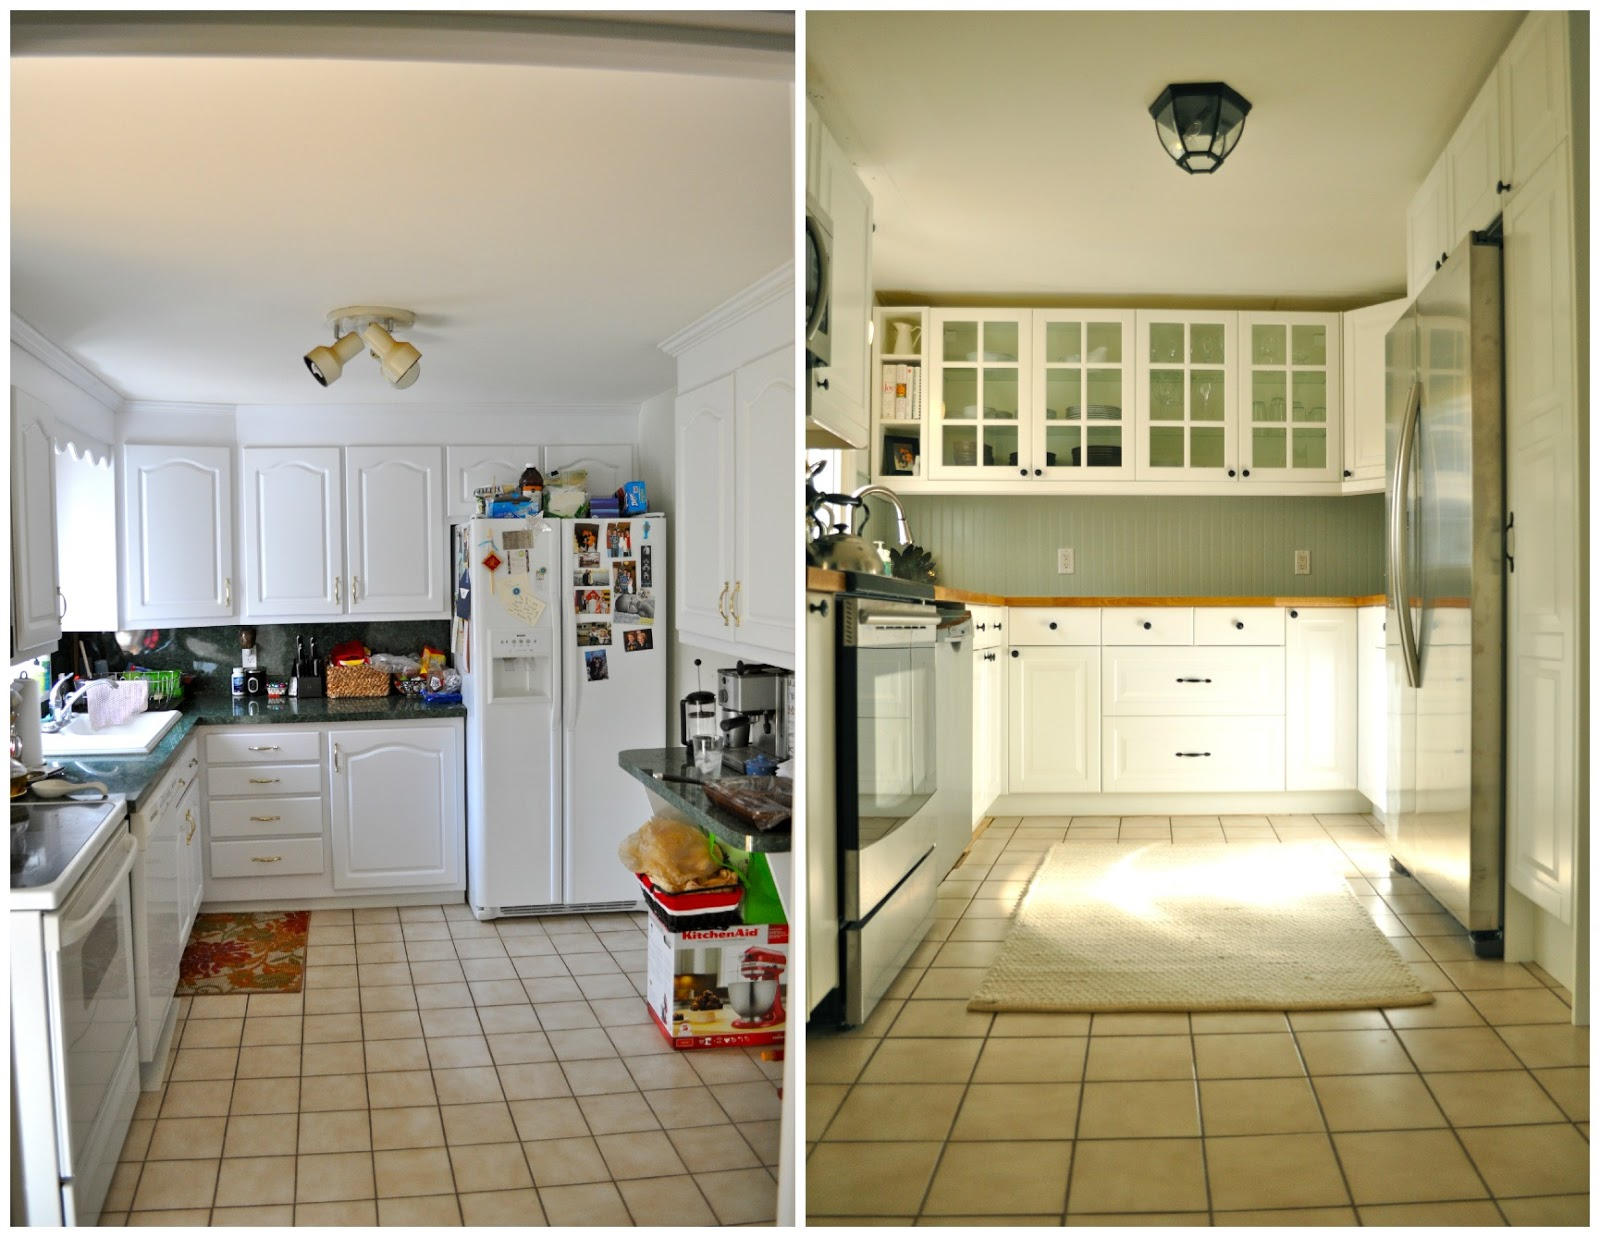 marvelous beautiful kitchen | It's Marvelous: my beautiful new kitchen!